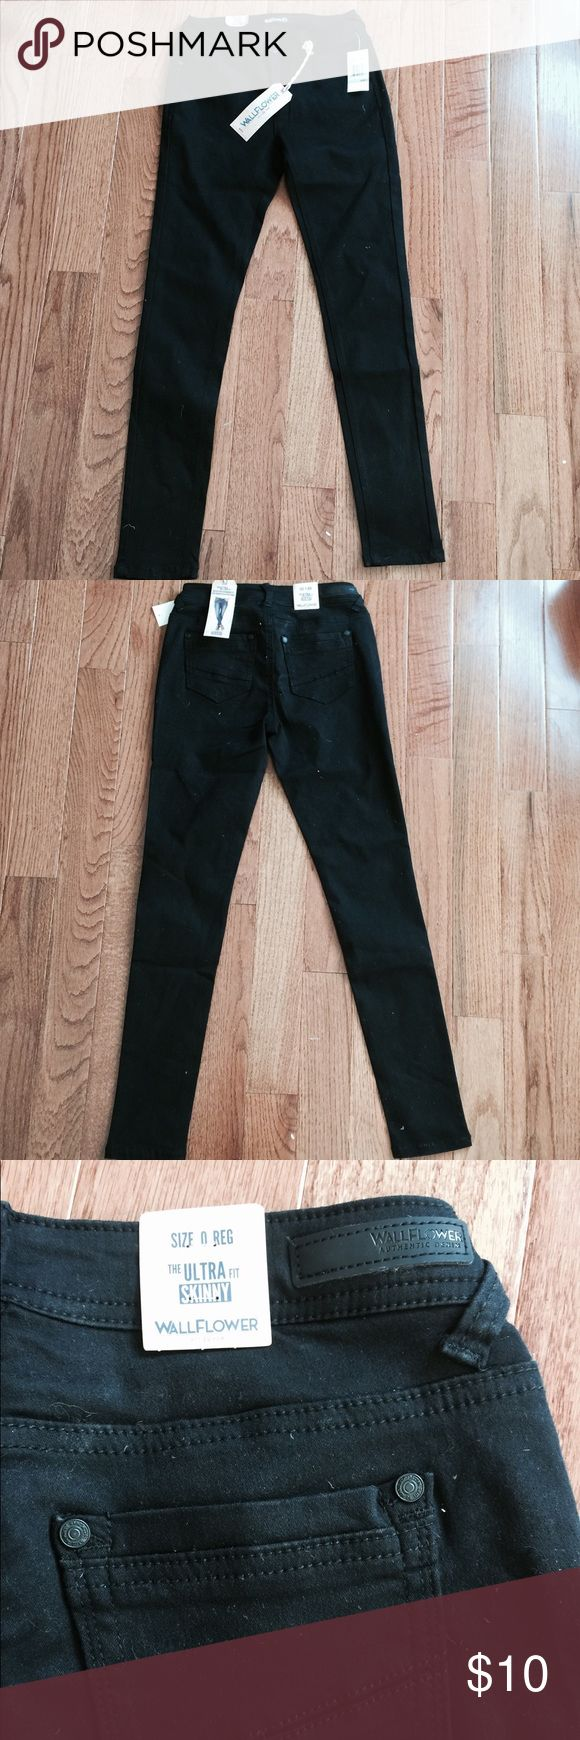 Wallflower black skinny jeans Brand new wallflower black skinny jeans size 0R Wallflower Jeans Skinny